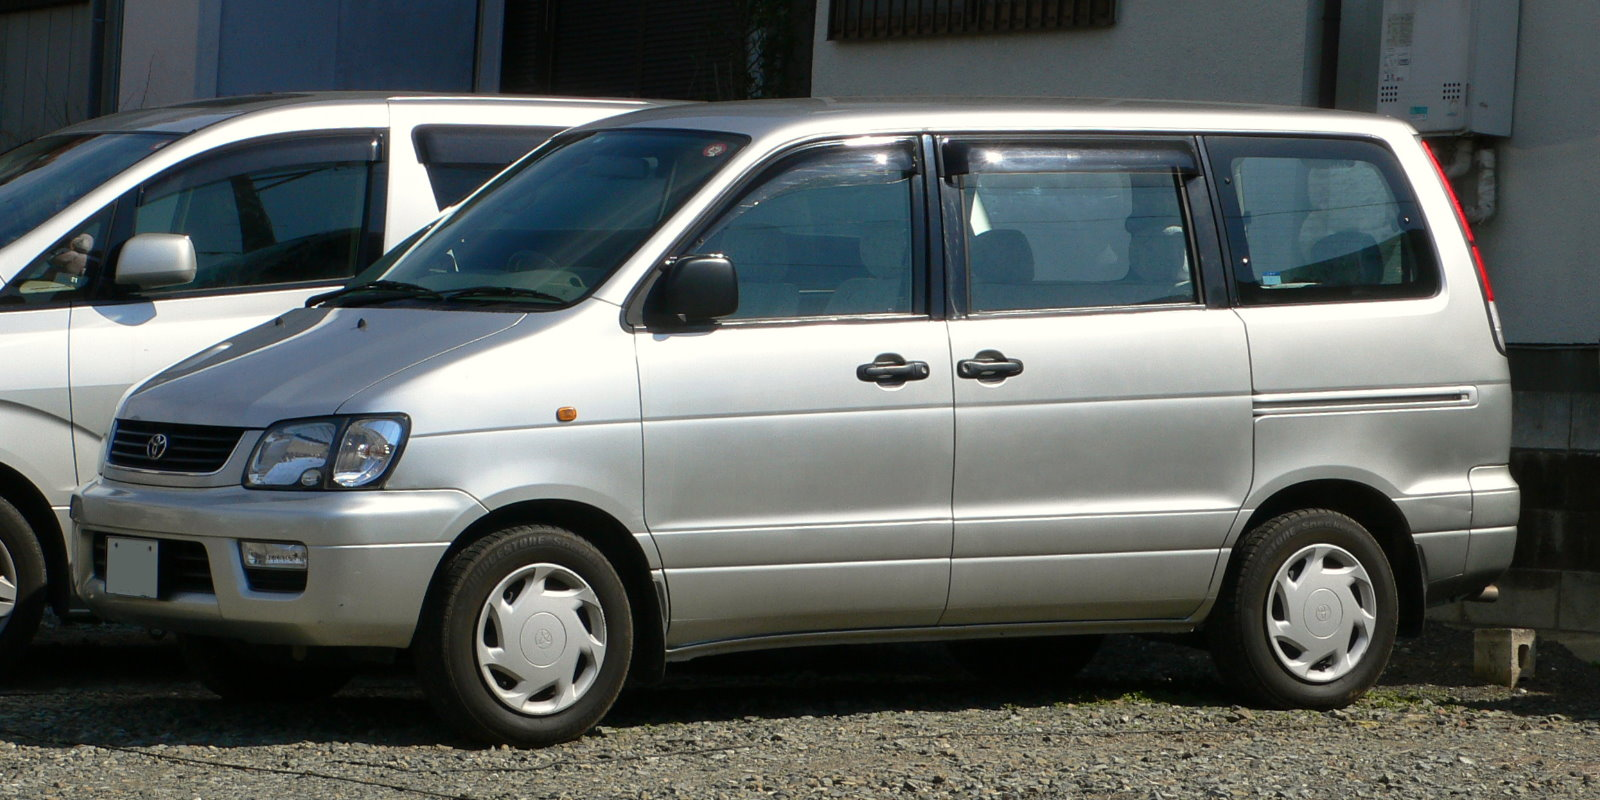 File1998 Toyota Liteace Noah 01 Wikimedia Commons White 2008 Jeep Liberty Current 0434 29 February